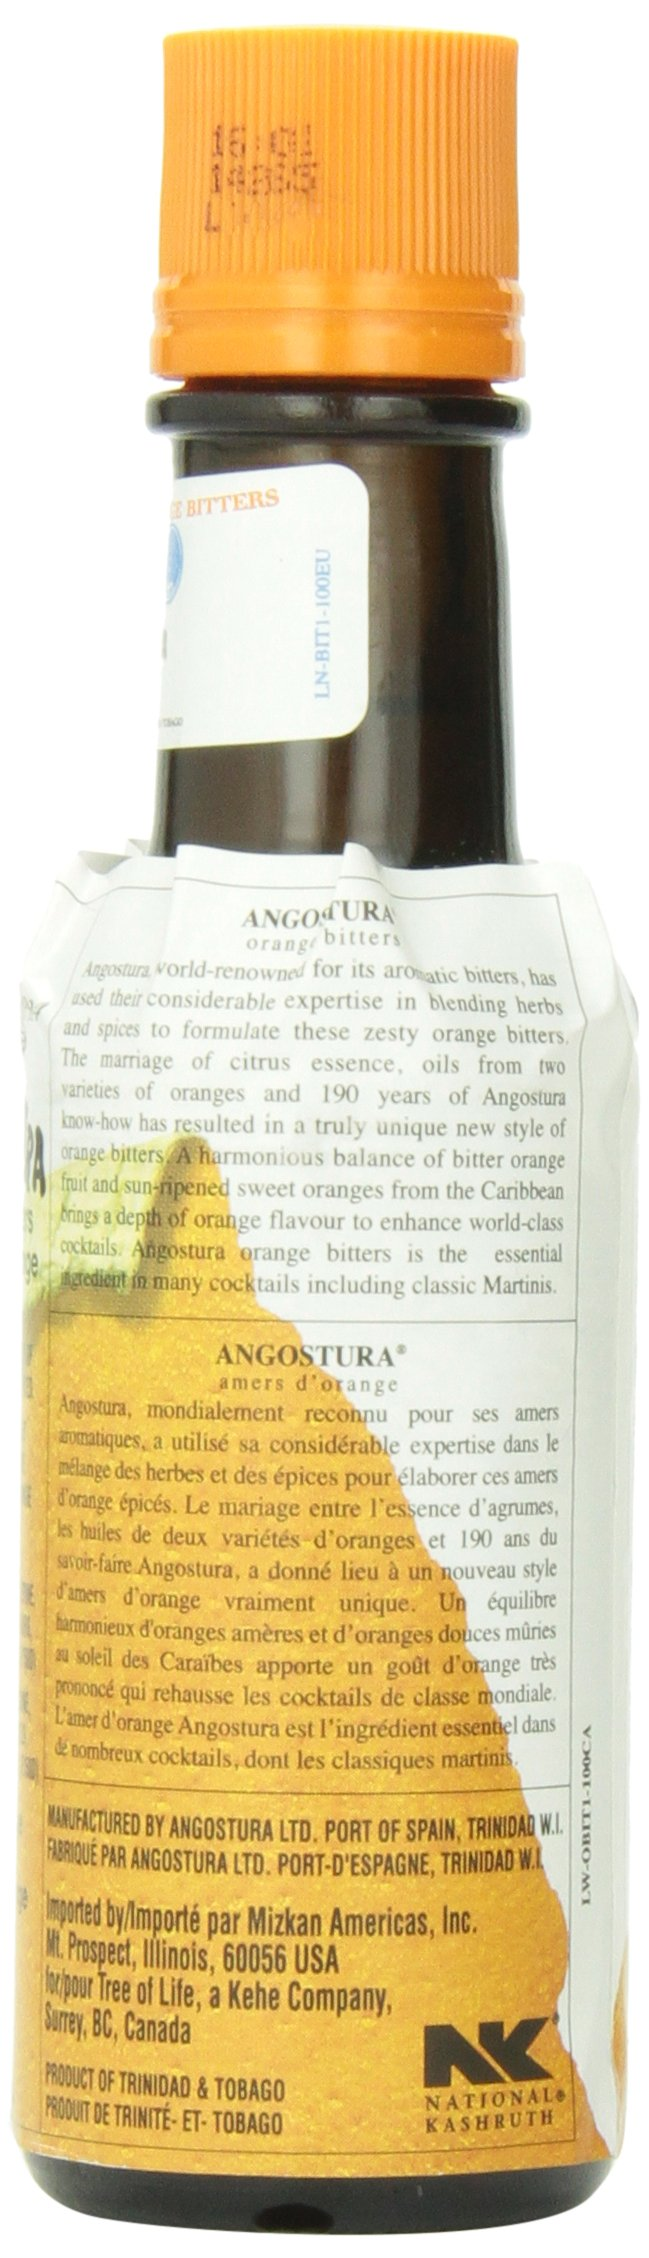 Angostura Orange Bitters, 100ml 4